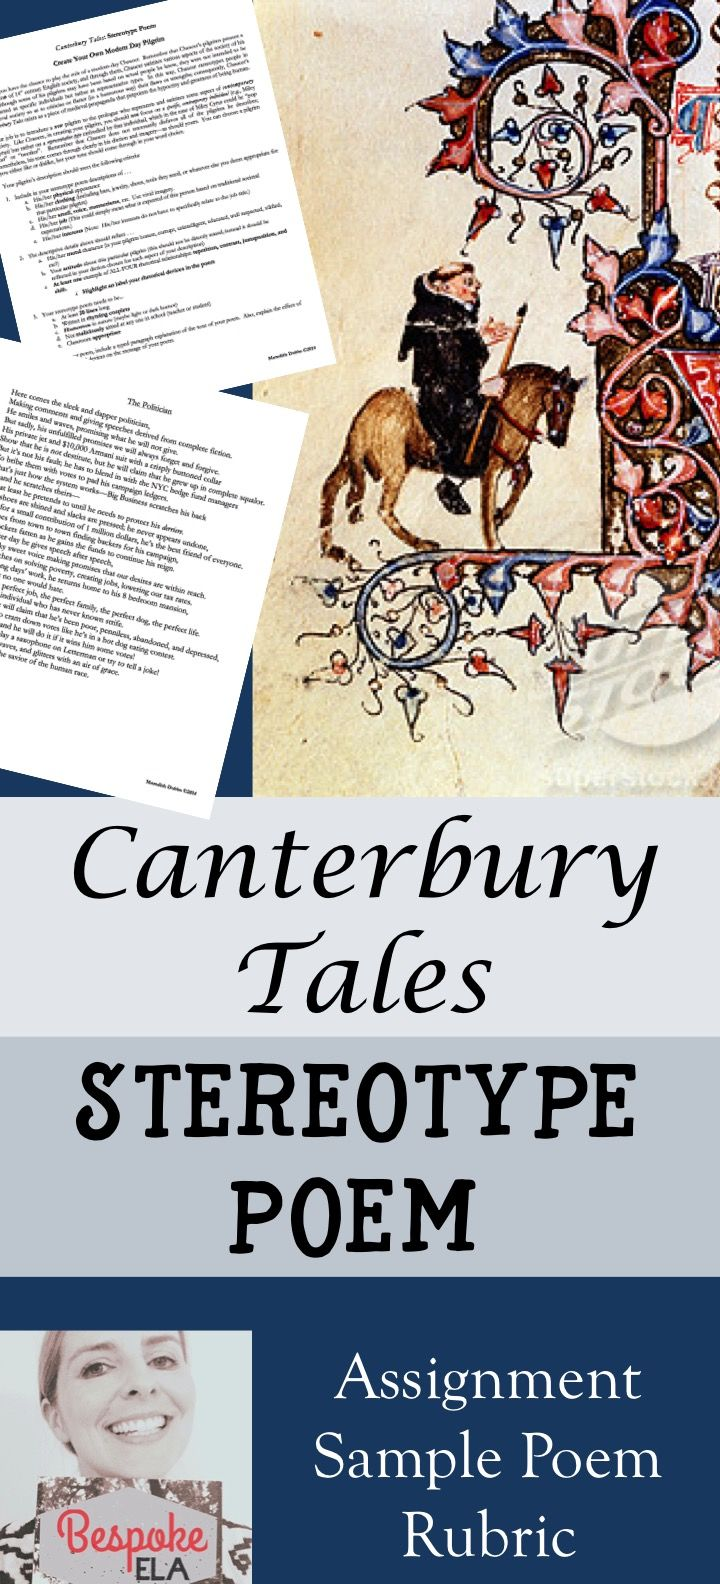 In this Canterbury Tales assignment, students become a modern-day Chaucer and create a stereotype poem based upon a contemporary figure in society. They must write a poem that describes this modern-day pilgrim, including imagery and rhetorical devices, that reveals a clear tone either approving or disapproving of the figure. After creating the poem, students are asked to write a paragraph explanation of their stereotype poem that includes the effect of their rhetorical devices.